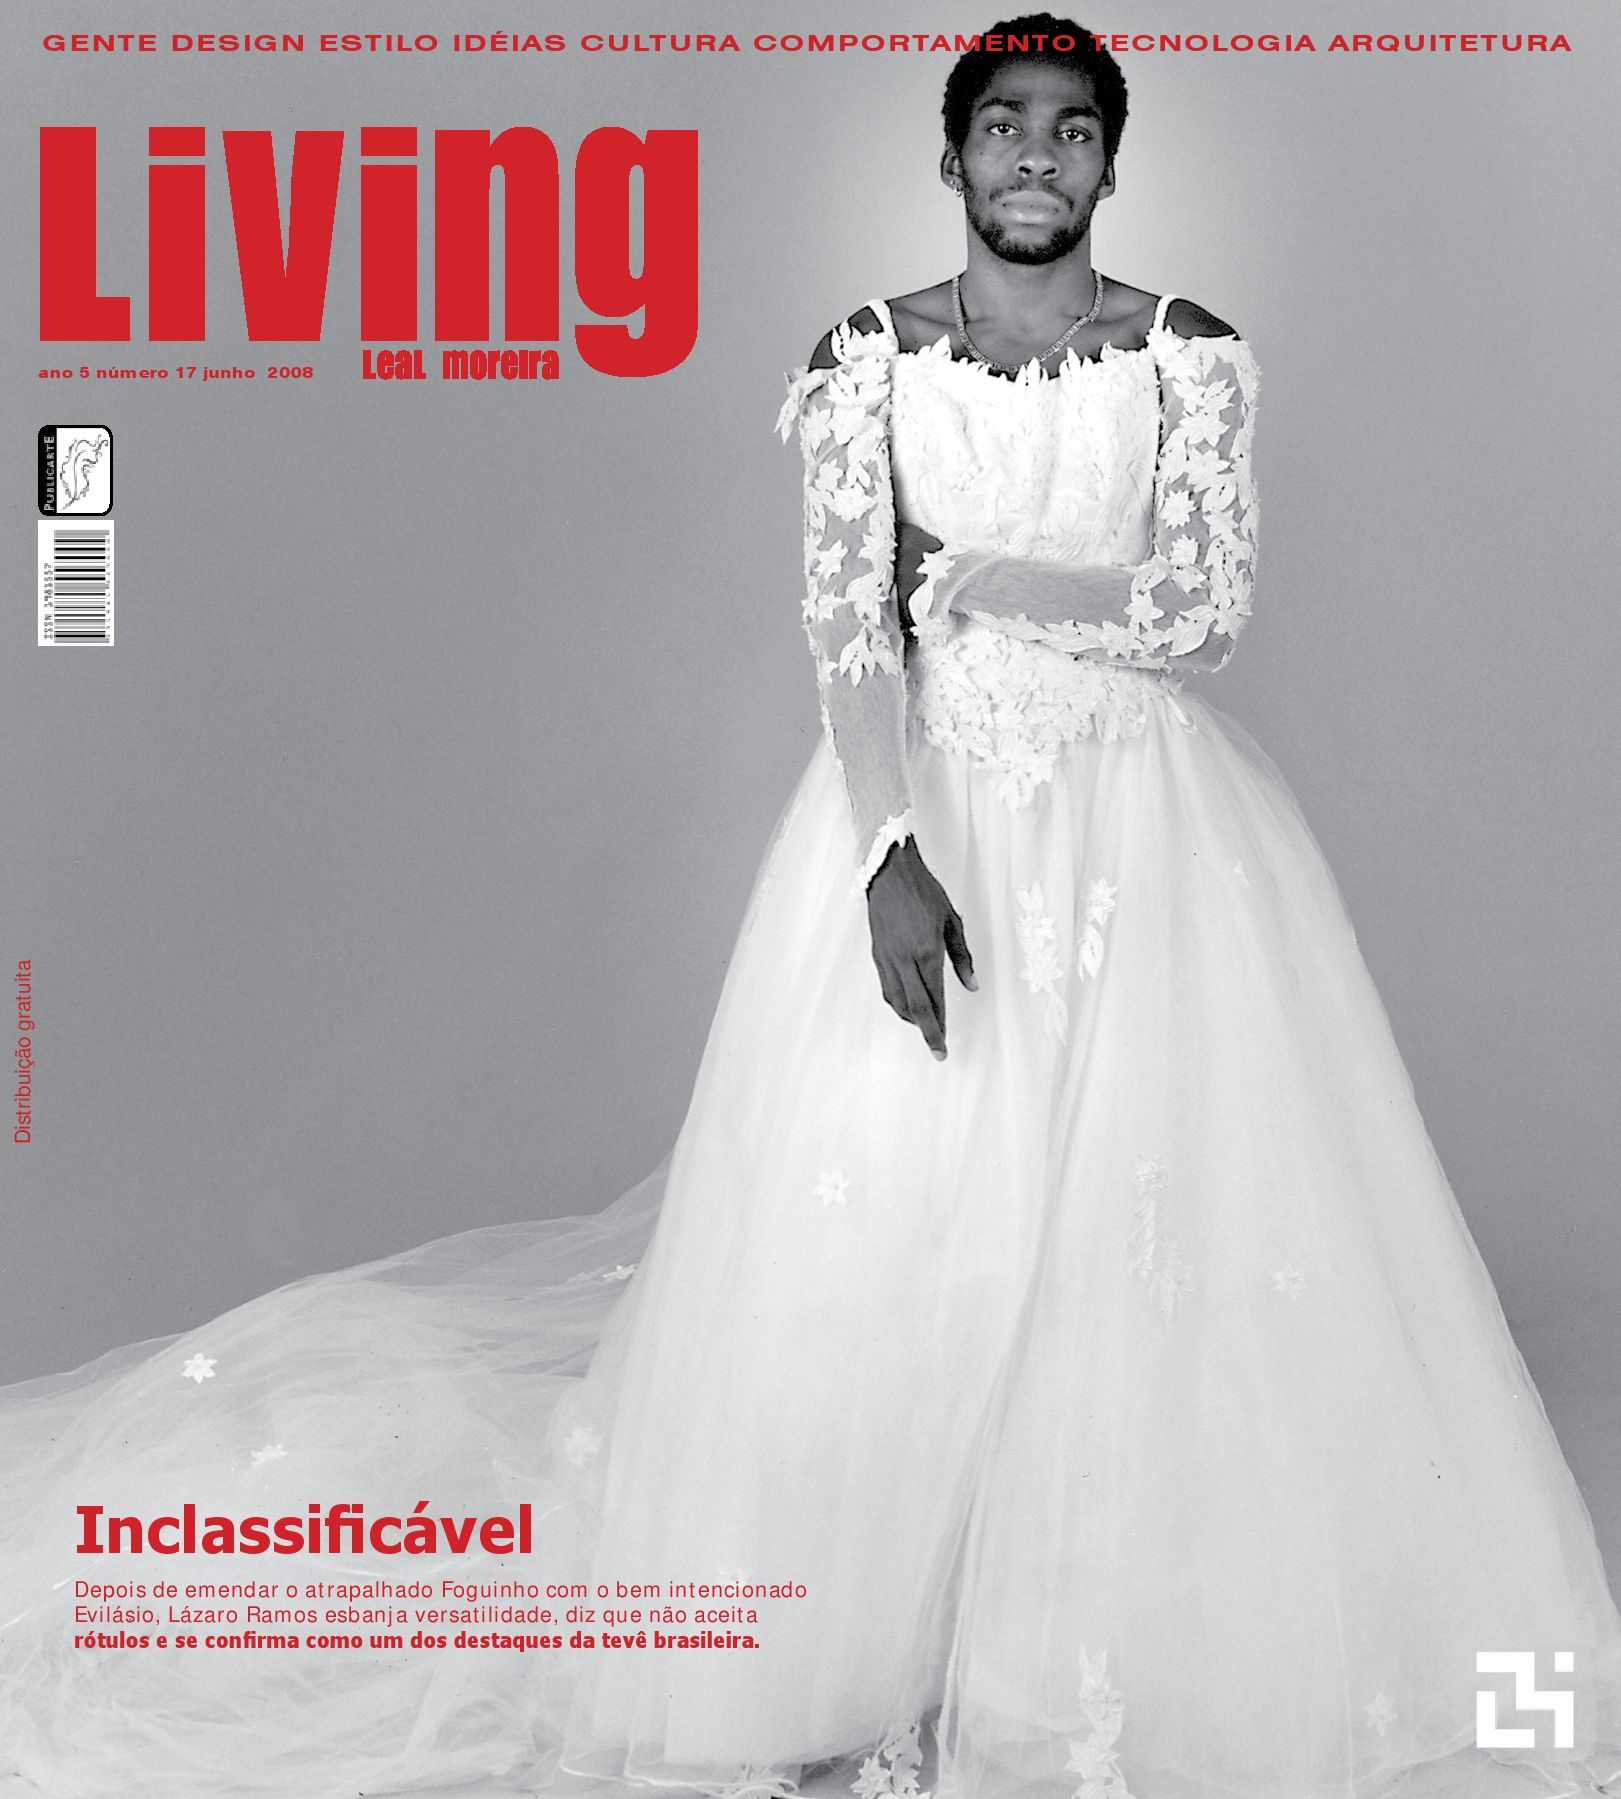 cf4329acf0100 Living by Fabricio de Paula - issuu